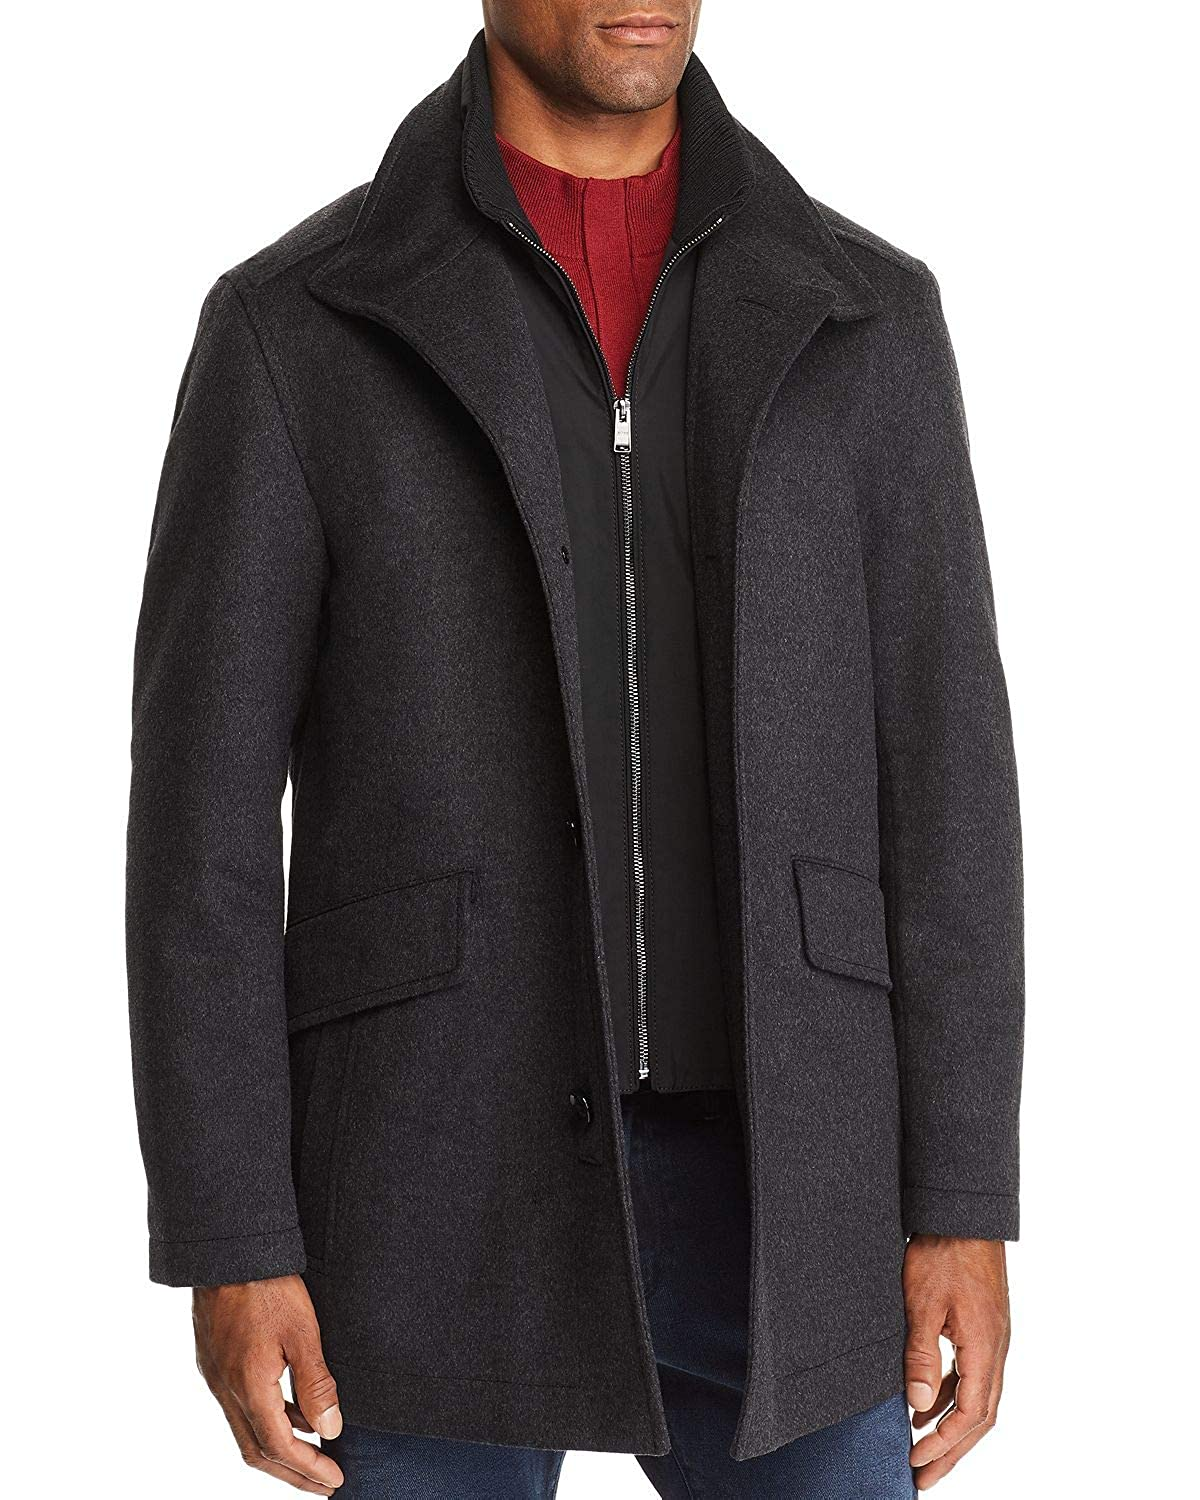 22f407f1 Amazon.com: Hugo Boss Men's Regular Fit Coxtan 6 Wool-Cashmere Coat:  Clothing